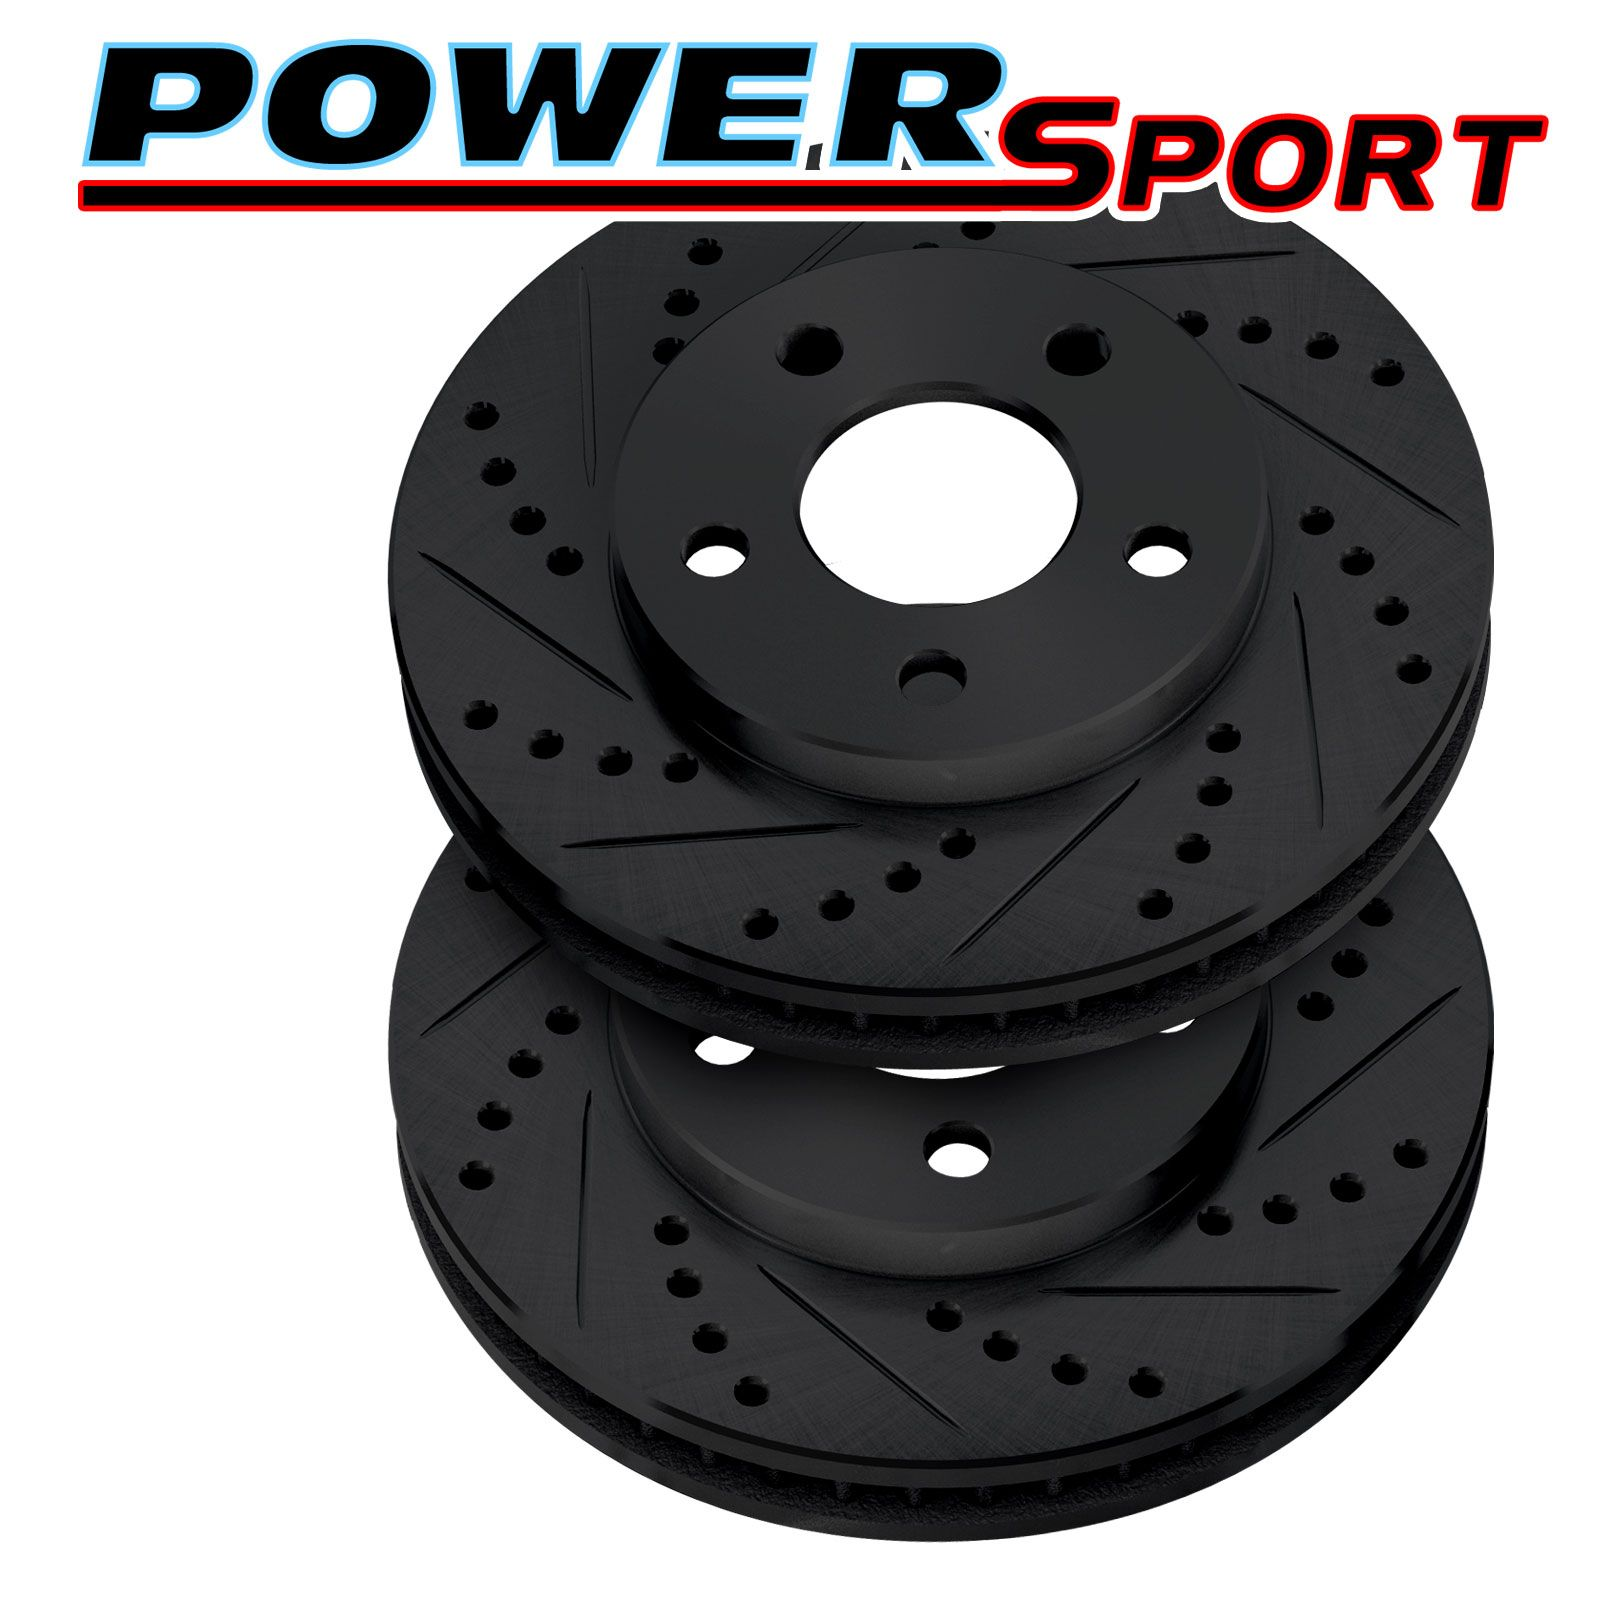 POWERSPORT BLACK *DRILLED /& SLOTTED* DISC BN10908 Brake Rotors 2 Front + 2 Rear